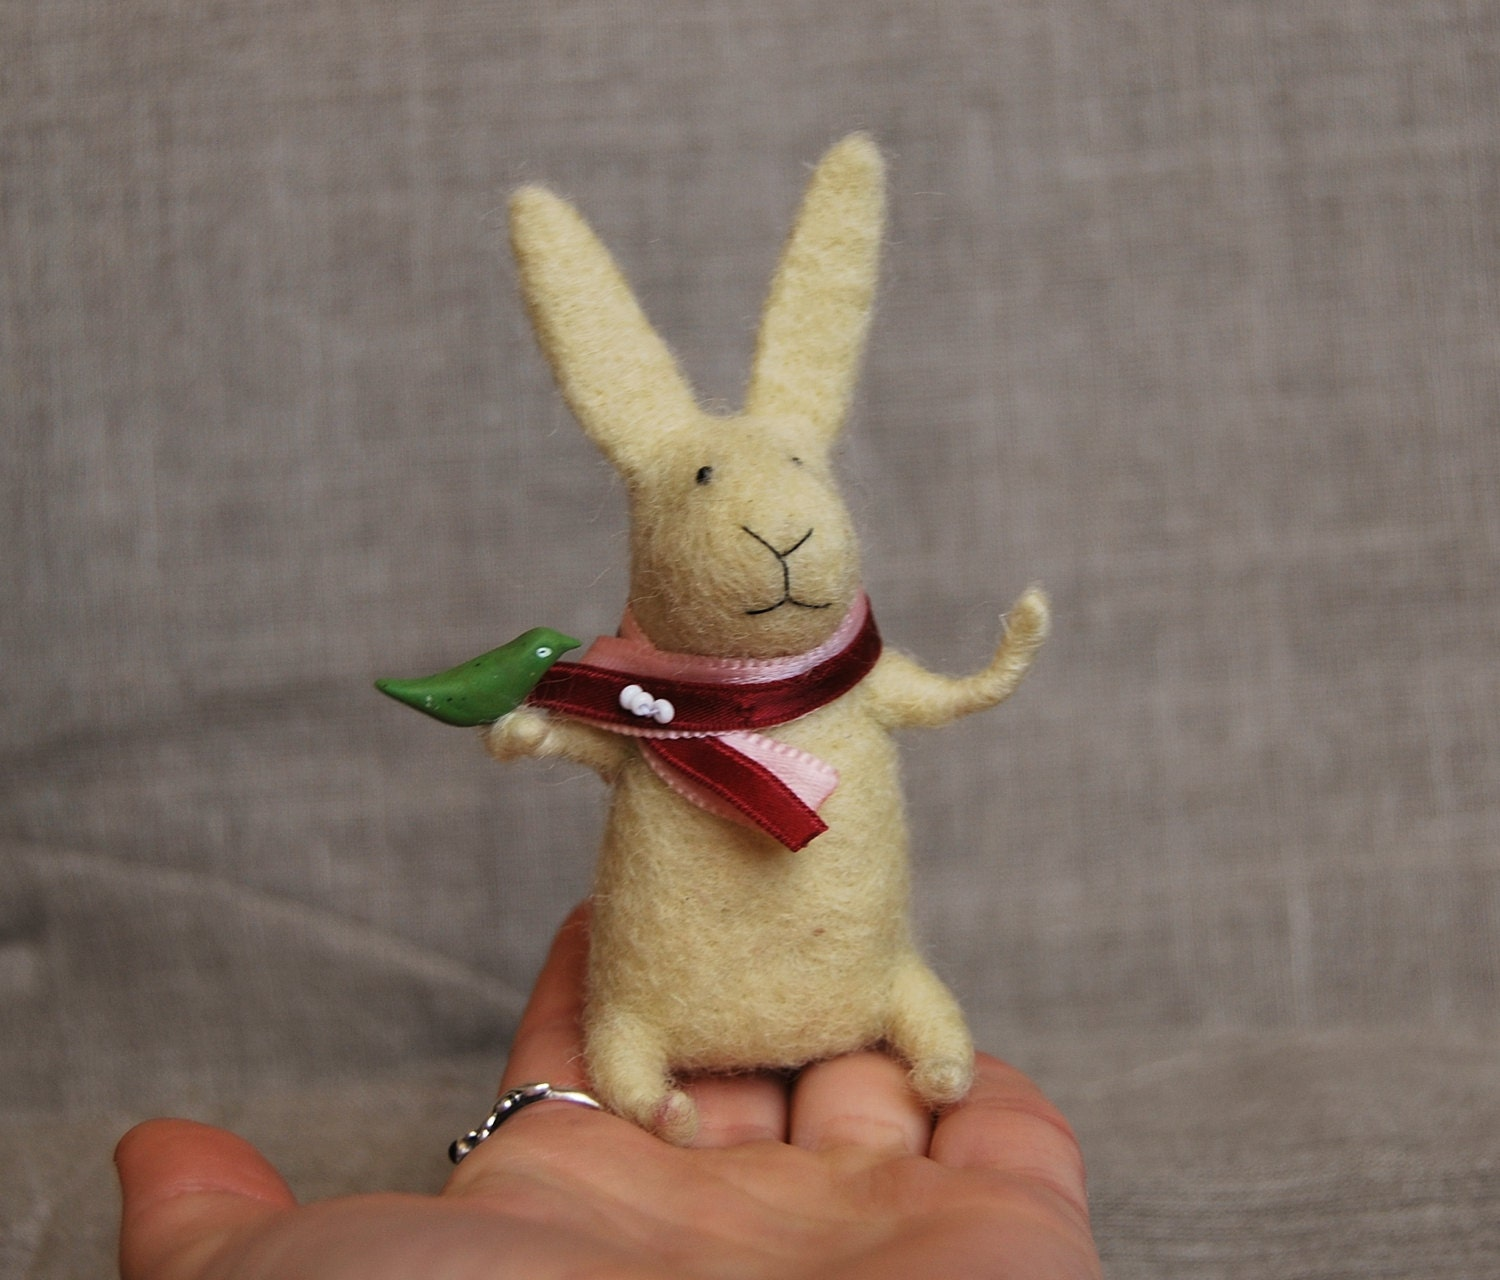 Easter Bunny, Needle Felted Bunny, Needle Felted Animal, Light Yellow Bunny, Felted Miniature, Felted Toy - healoom